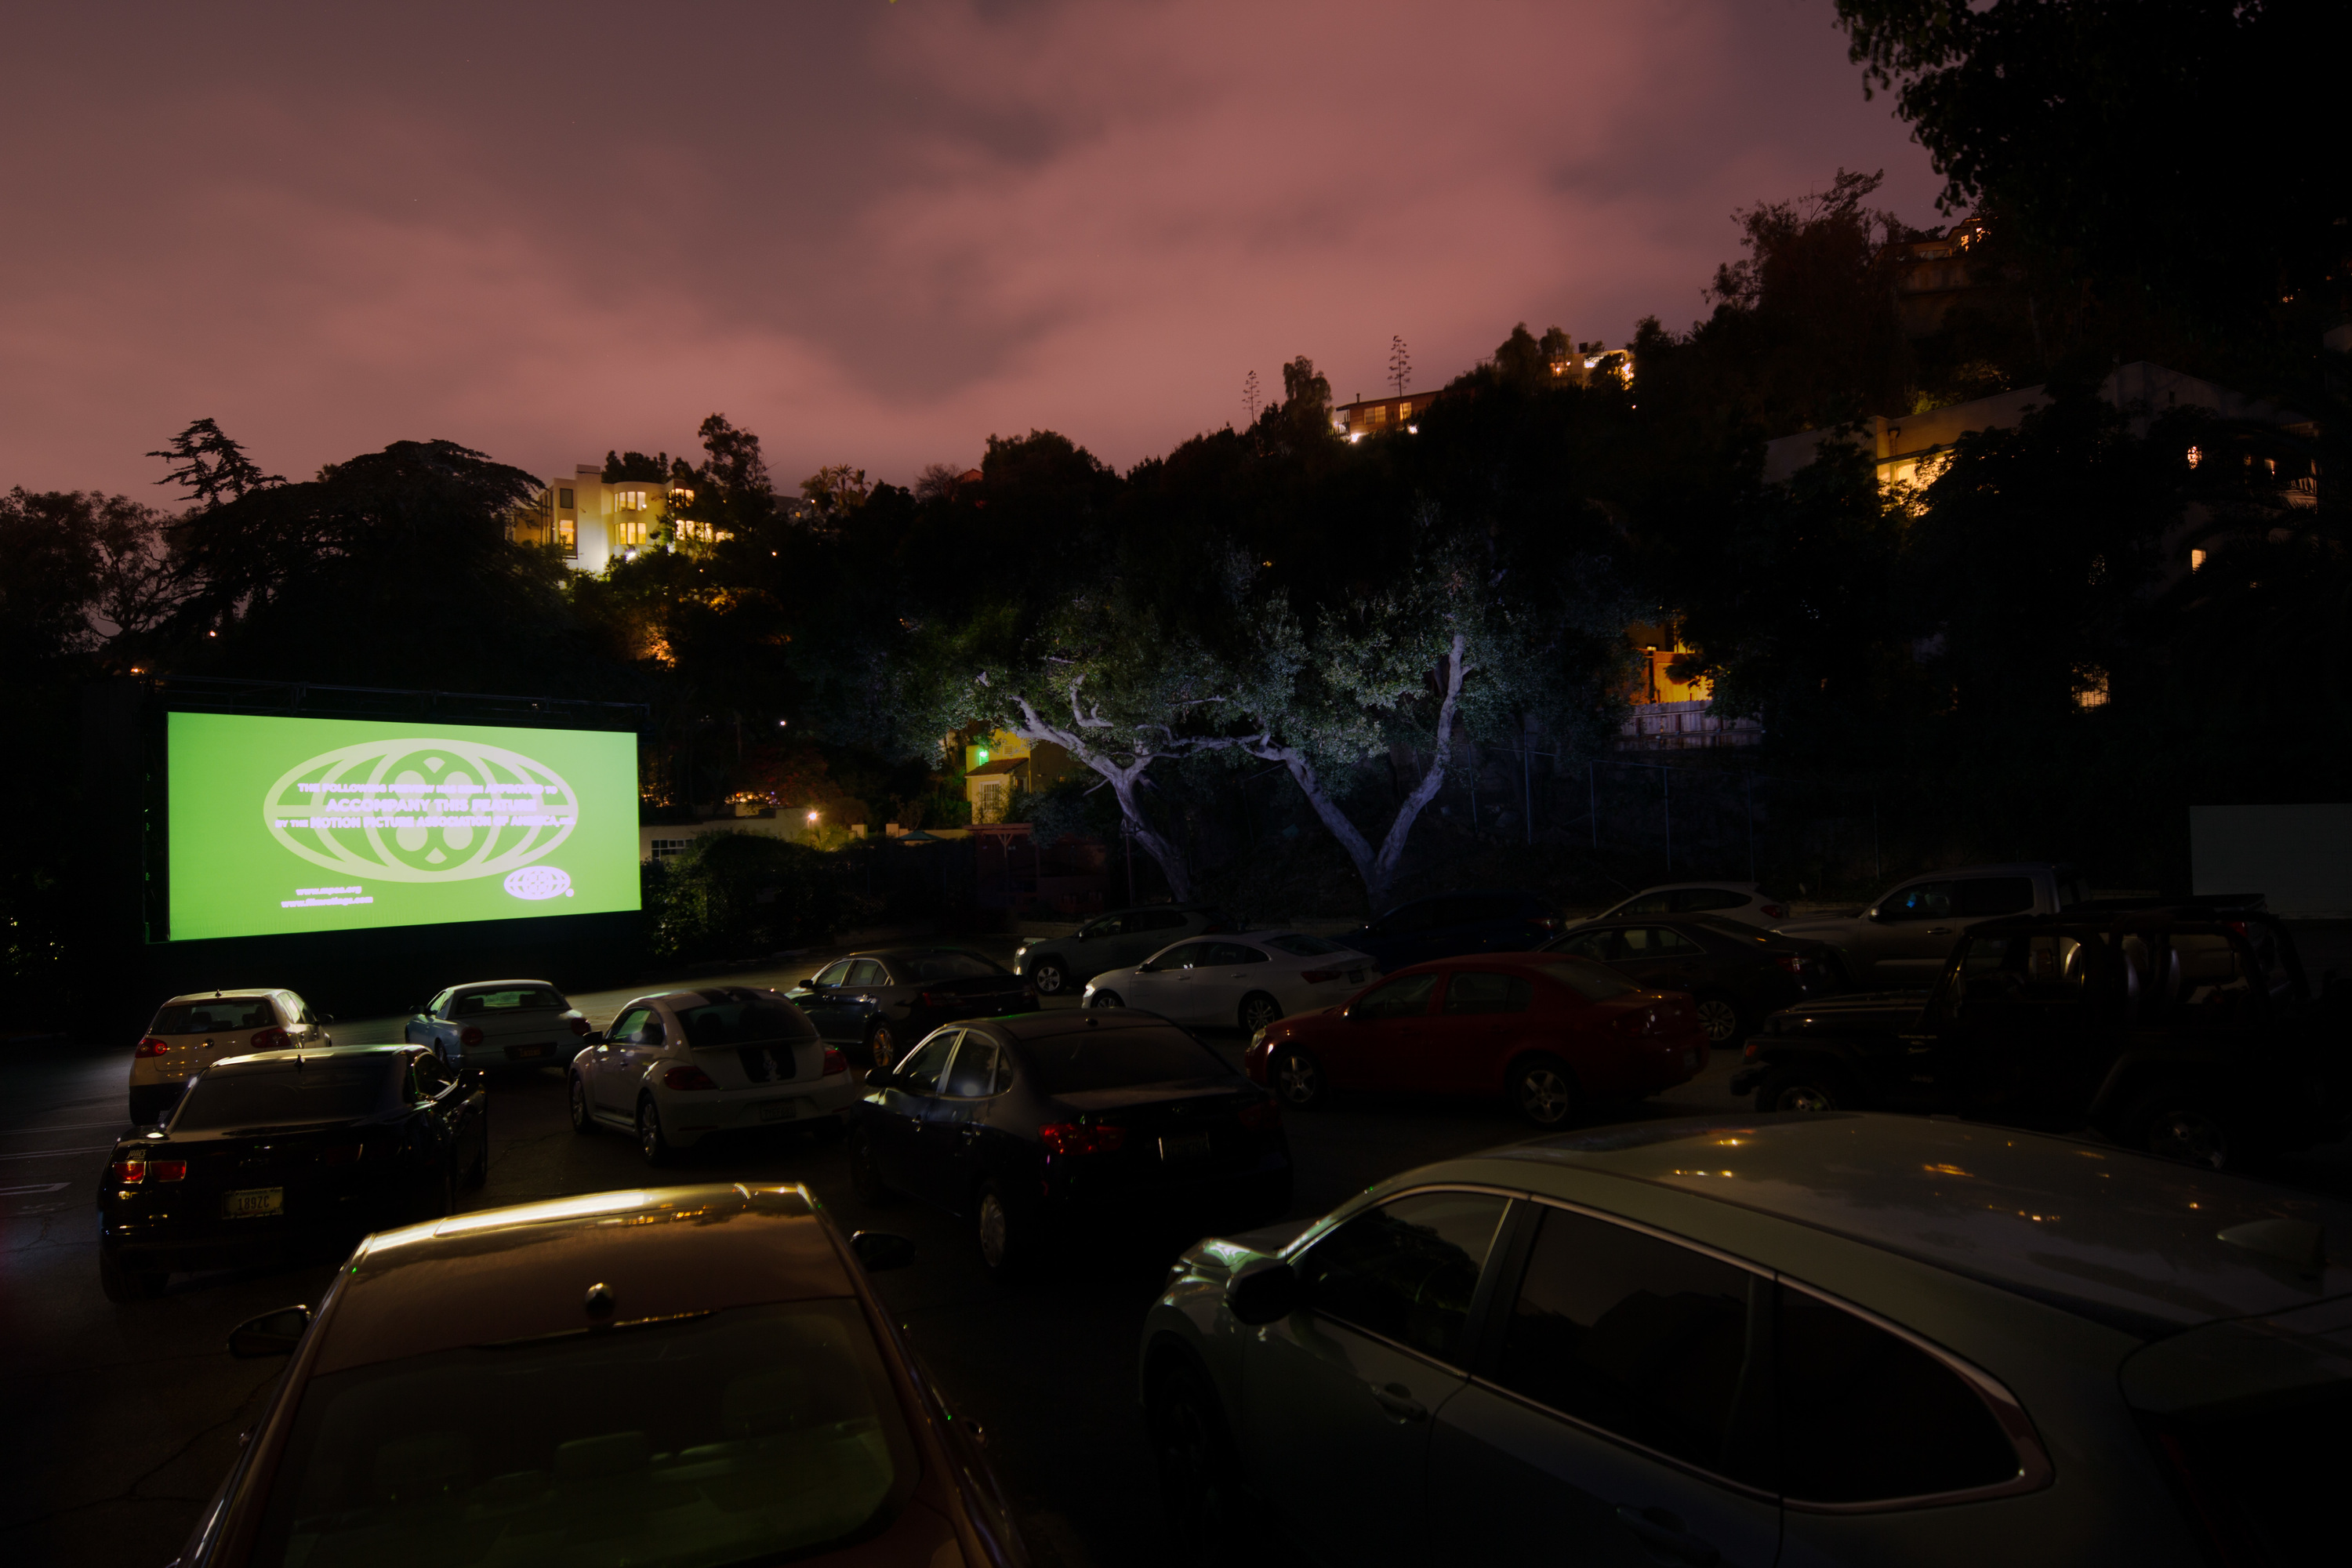 Post 43 Drive-In